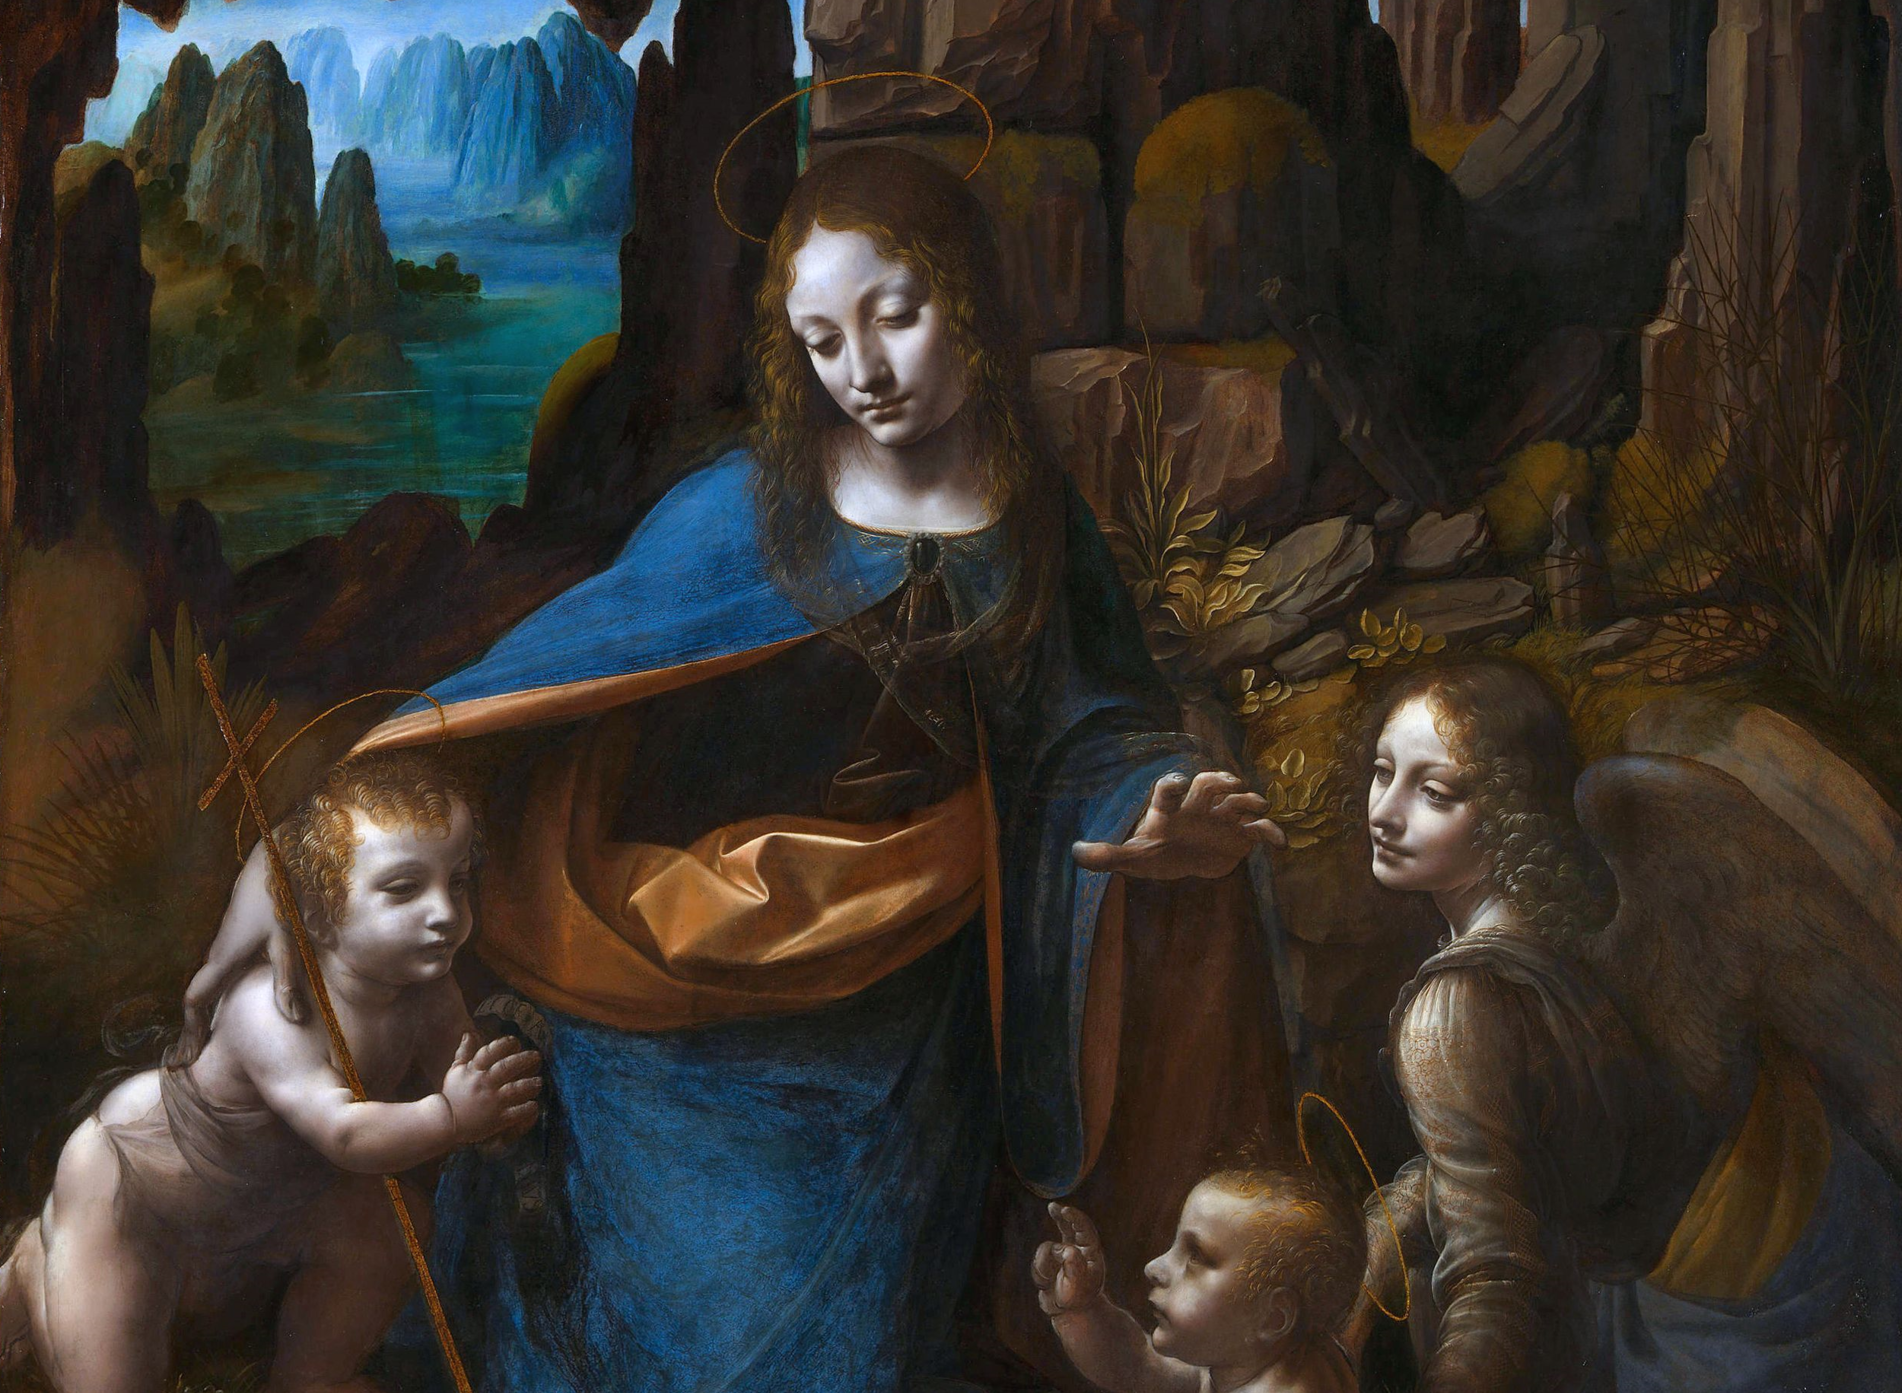 What Leonardo's depiction of Virgin Mary and Jesus tells us about his religious beliefs